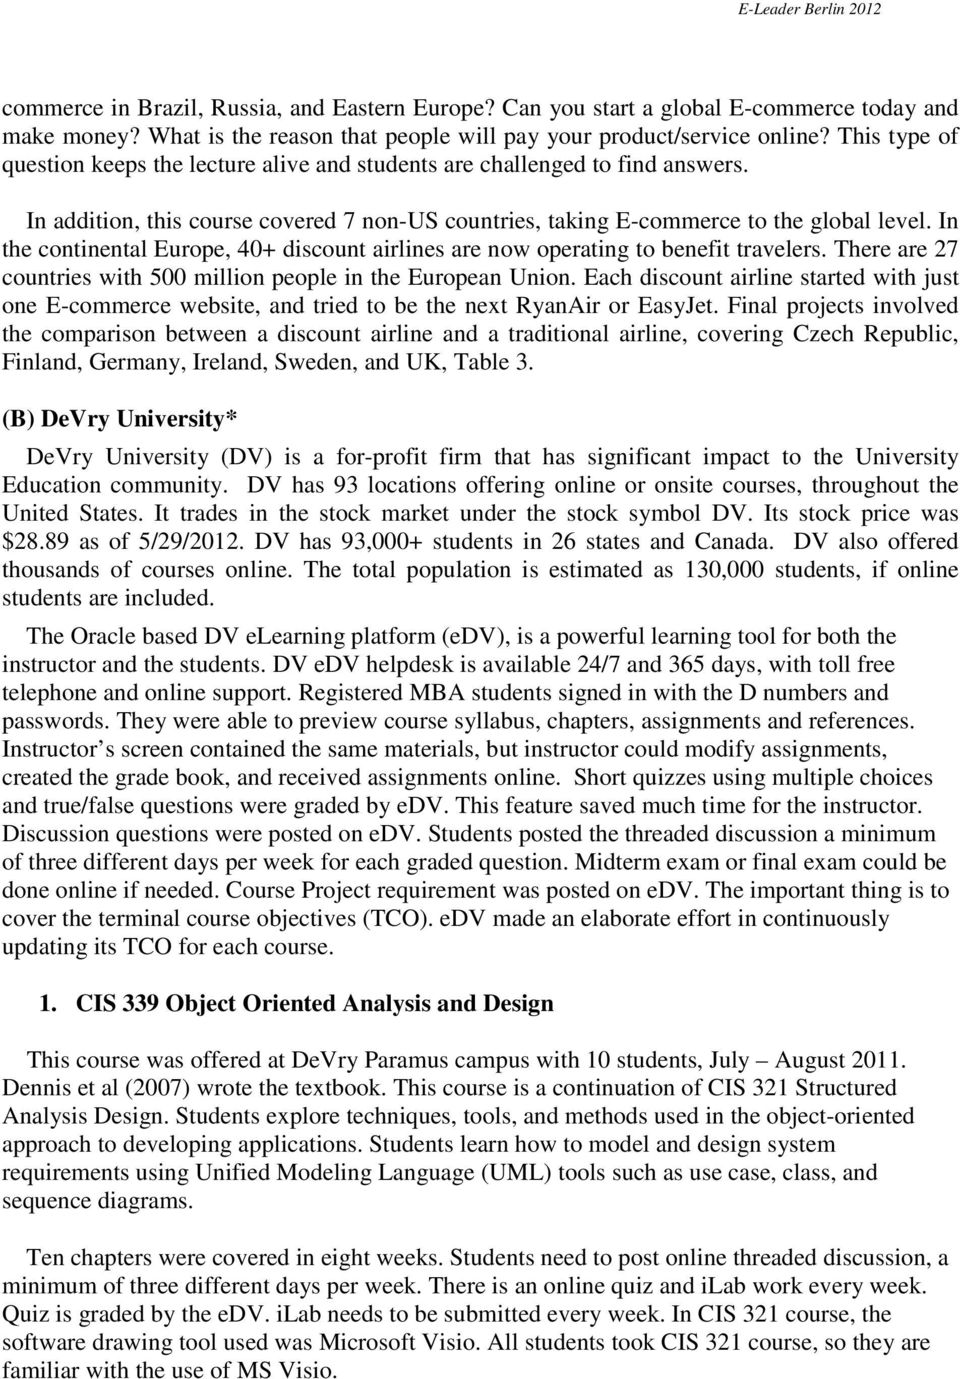 Case Studies in Systems and Database Courses - PDF